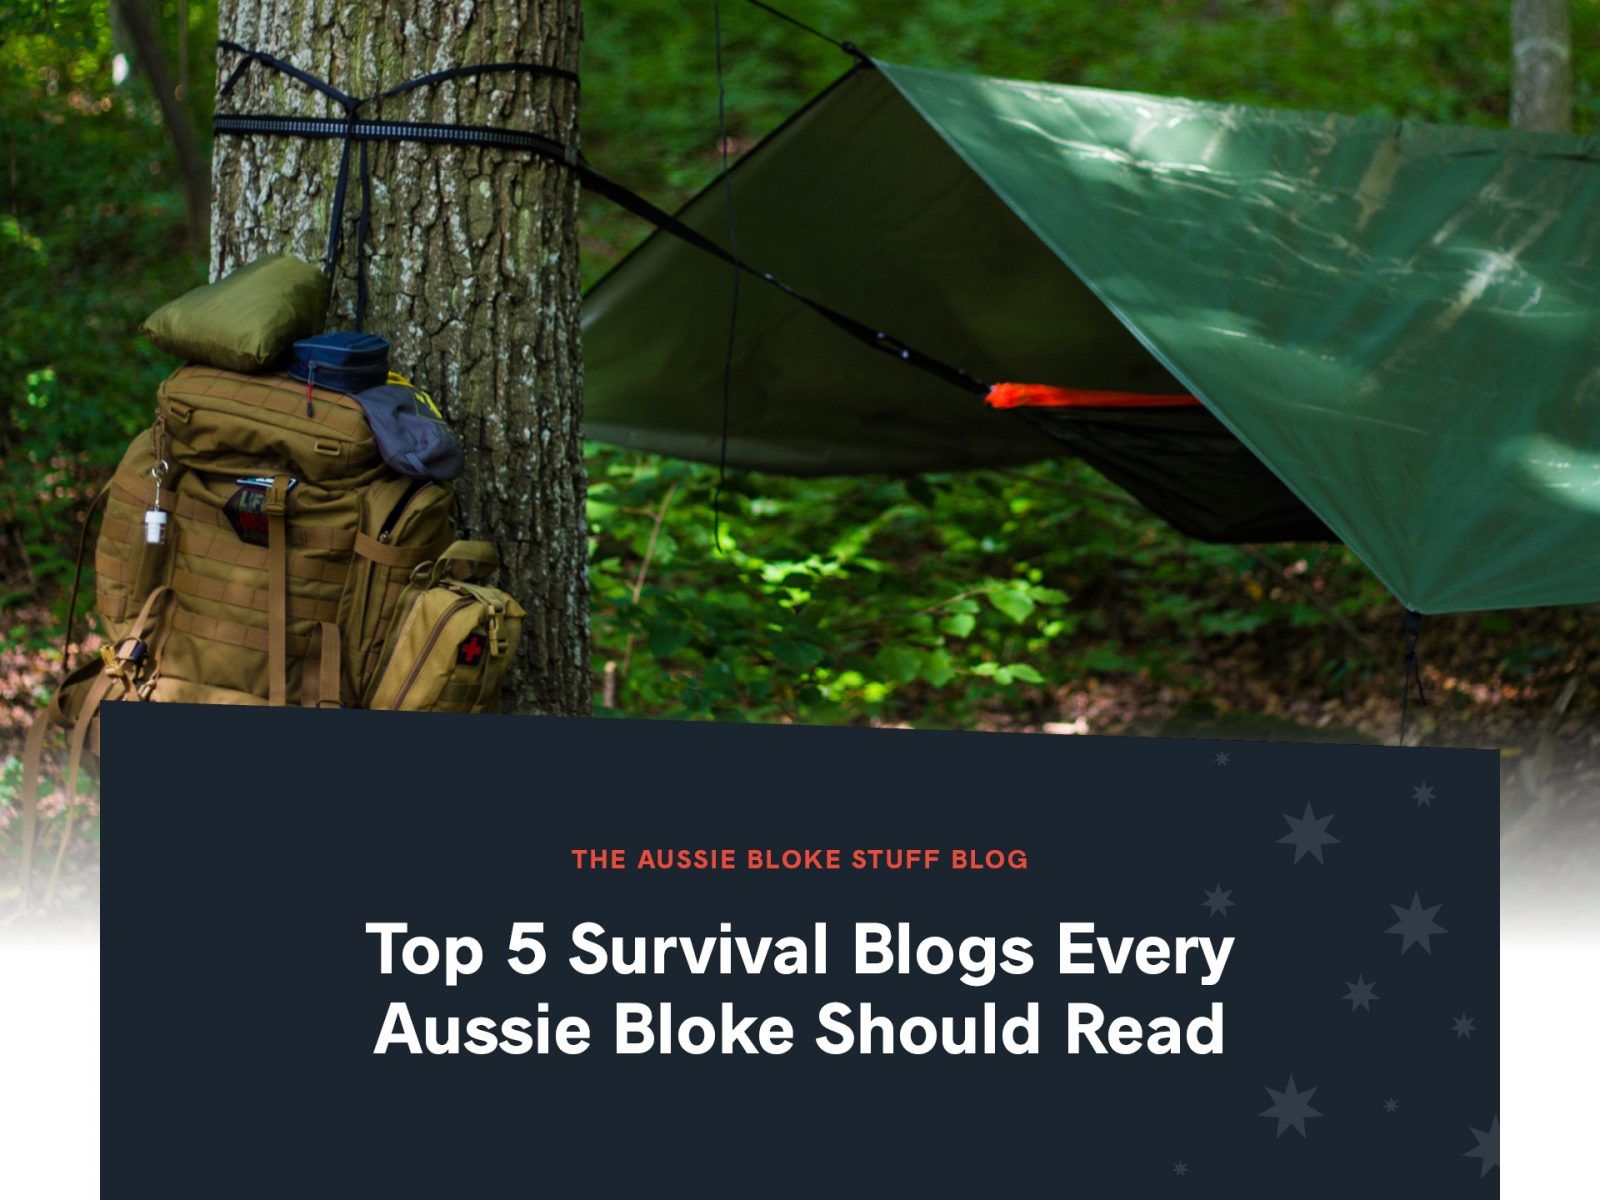 Top 5 Survival Blogs Every Aussie Bloke Should Read - (AussieBlokeStuff)